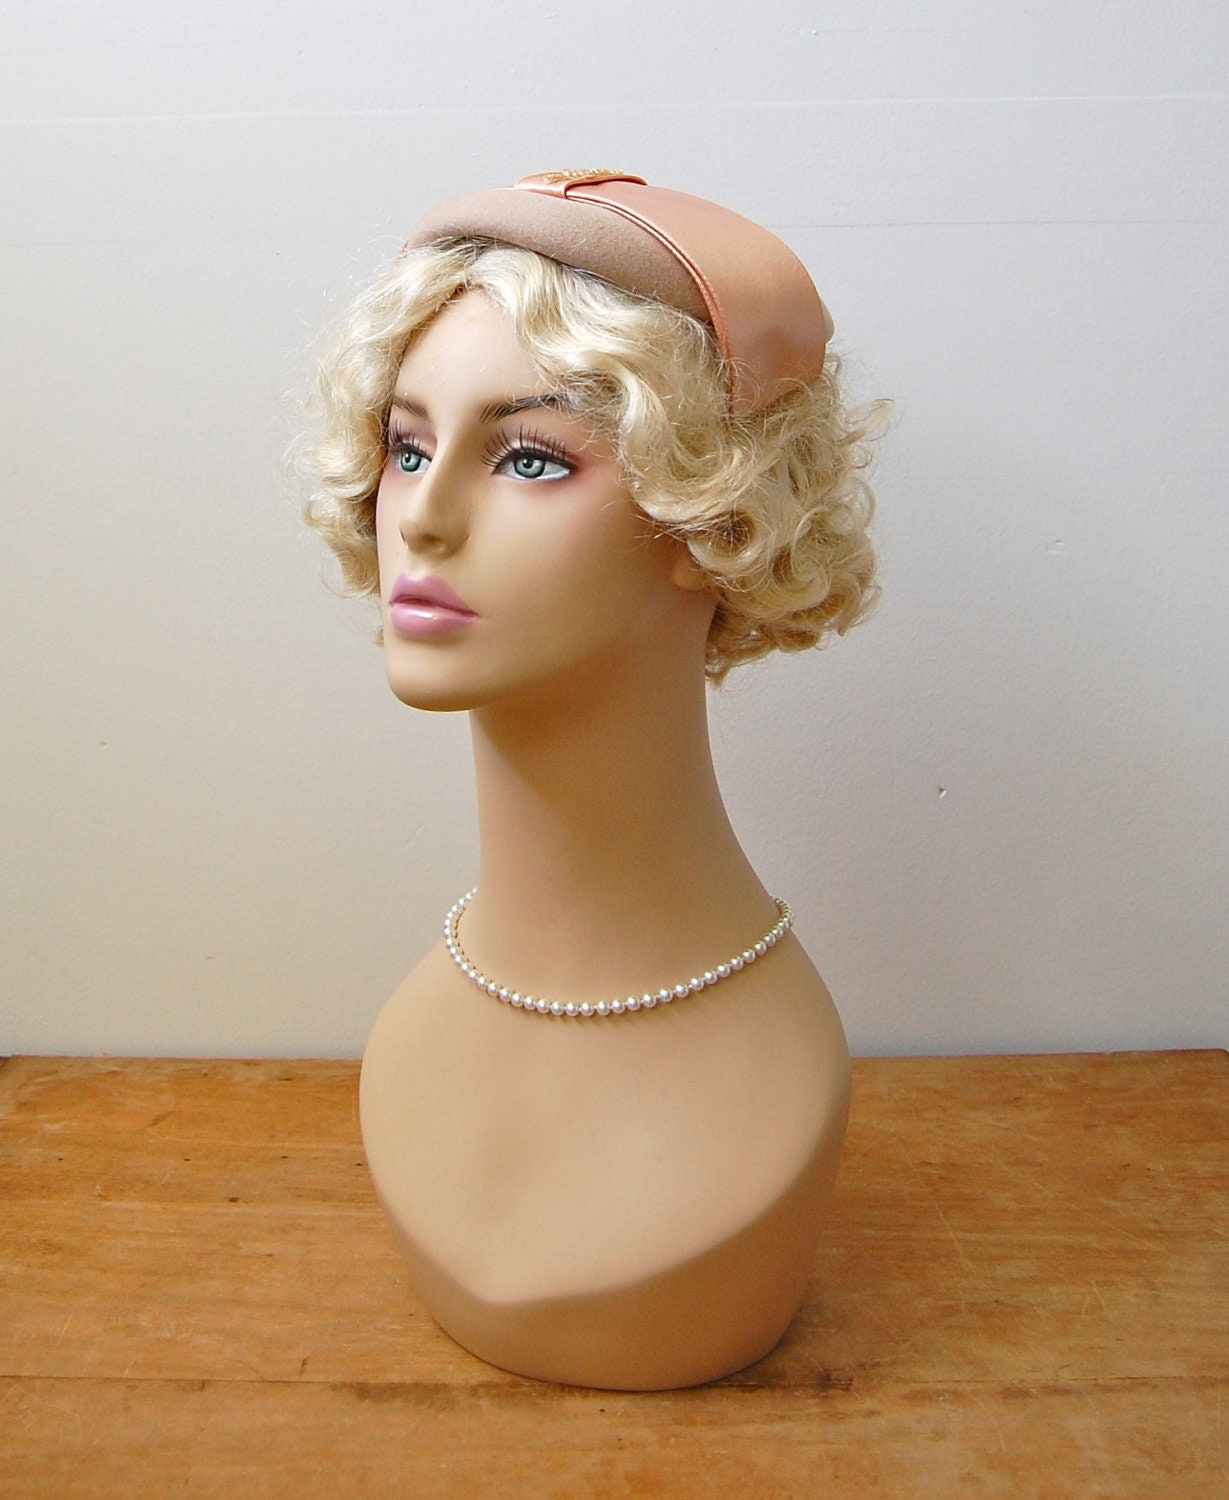 Vintage 1950s Hat - 50s Pink & Nude Cocktail Hat - The Leona